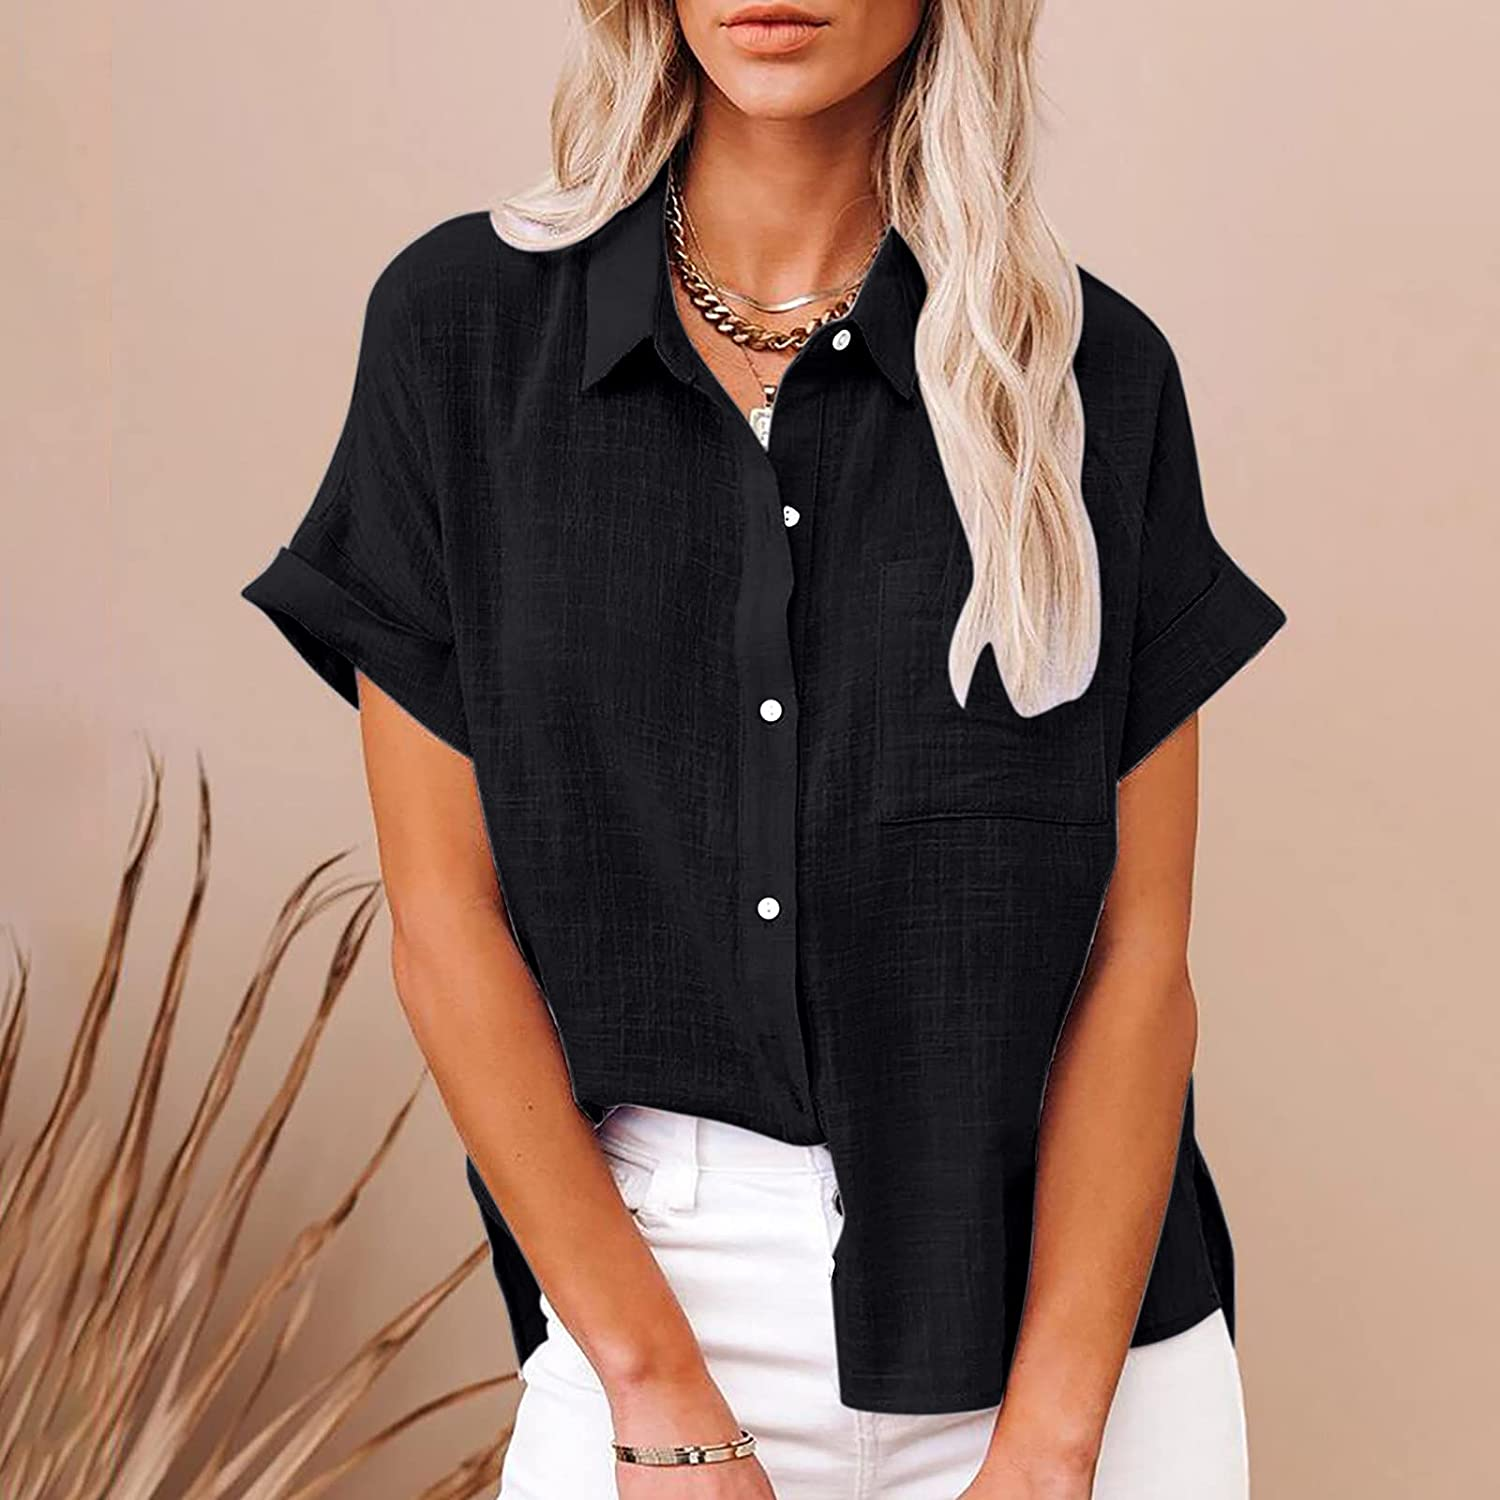 Women's Tops Fashion Solid Button Shirt Female V-Neck Loose T-Shirt Blouse Summer Tops Tee Shirts Blouse